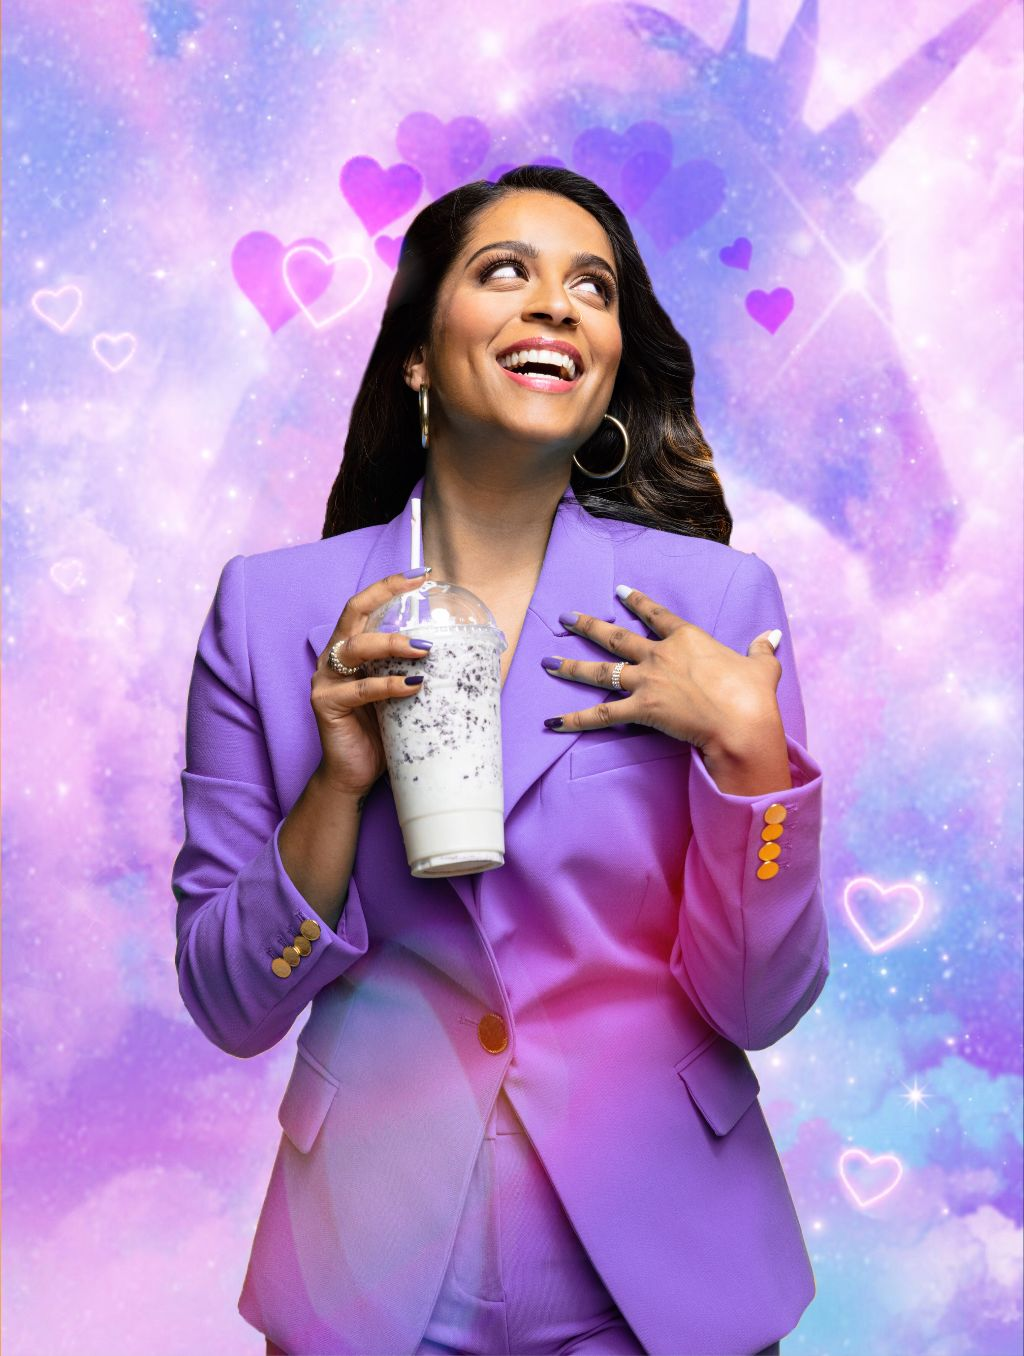 Lilly Singh is by far one of my most favorite people in the world. She has been an inspiration to me since I found her as an insecure preteen. Everyday she continues to teach me to be better and to follow my dreams. Thanks Lilly! #freetoedit #remixit #Lilly #Singh #ALittleLateWithLillySingh #purple #unicorn #indiArt01 #ecalittlelate